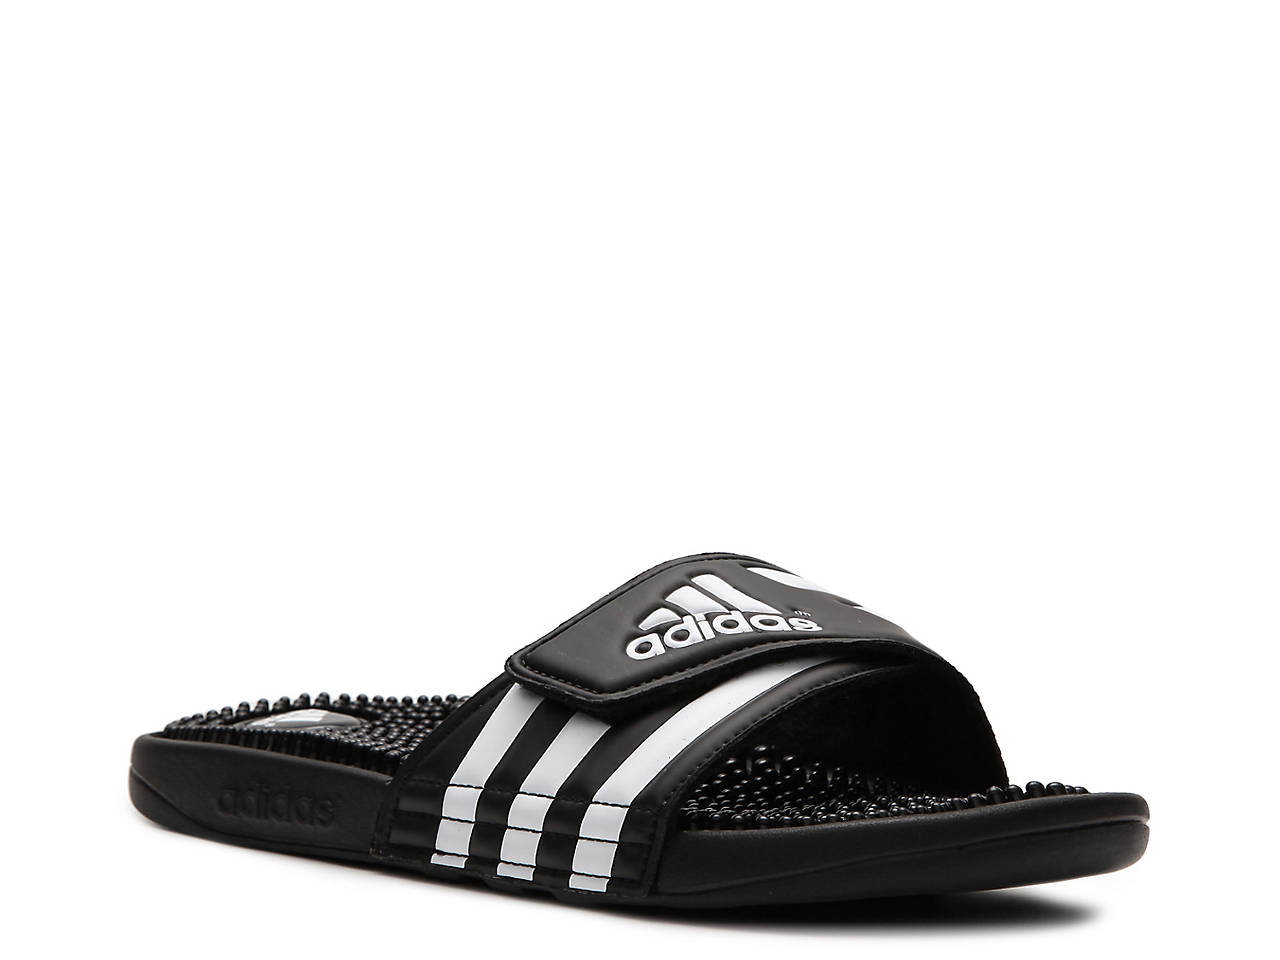 02f74bf9d adidas Adissage Slide Sandal - Men s Men s Shoes